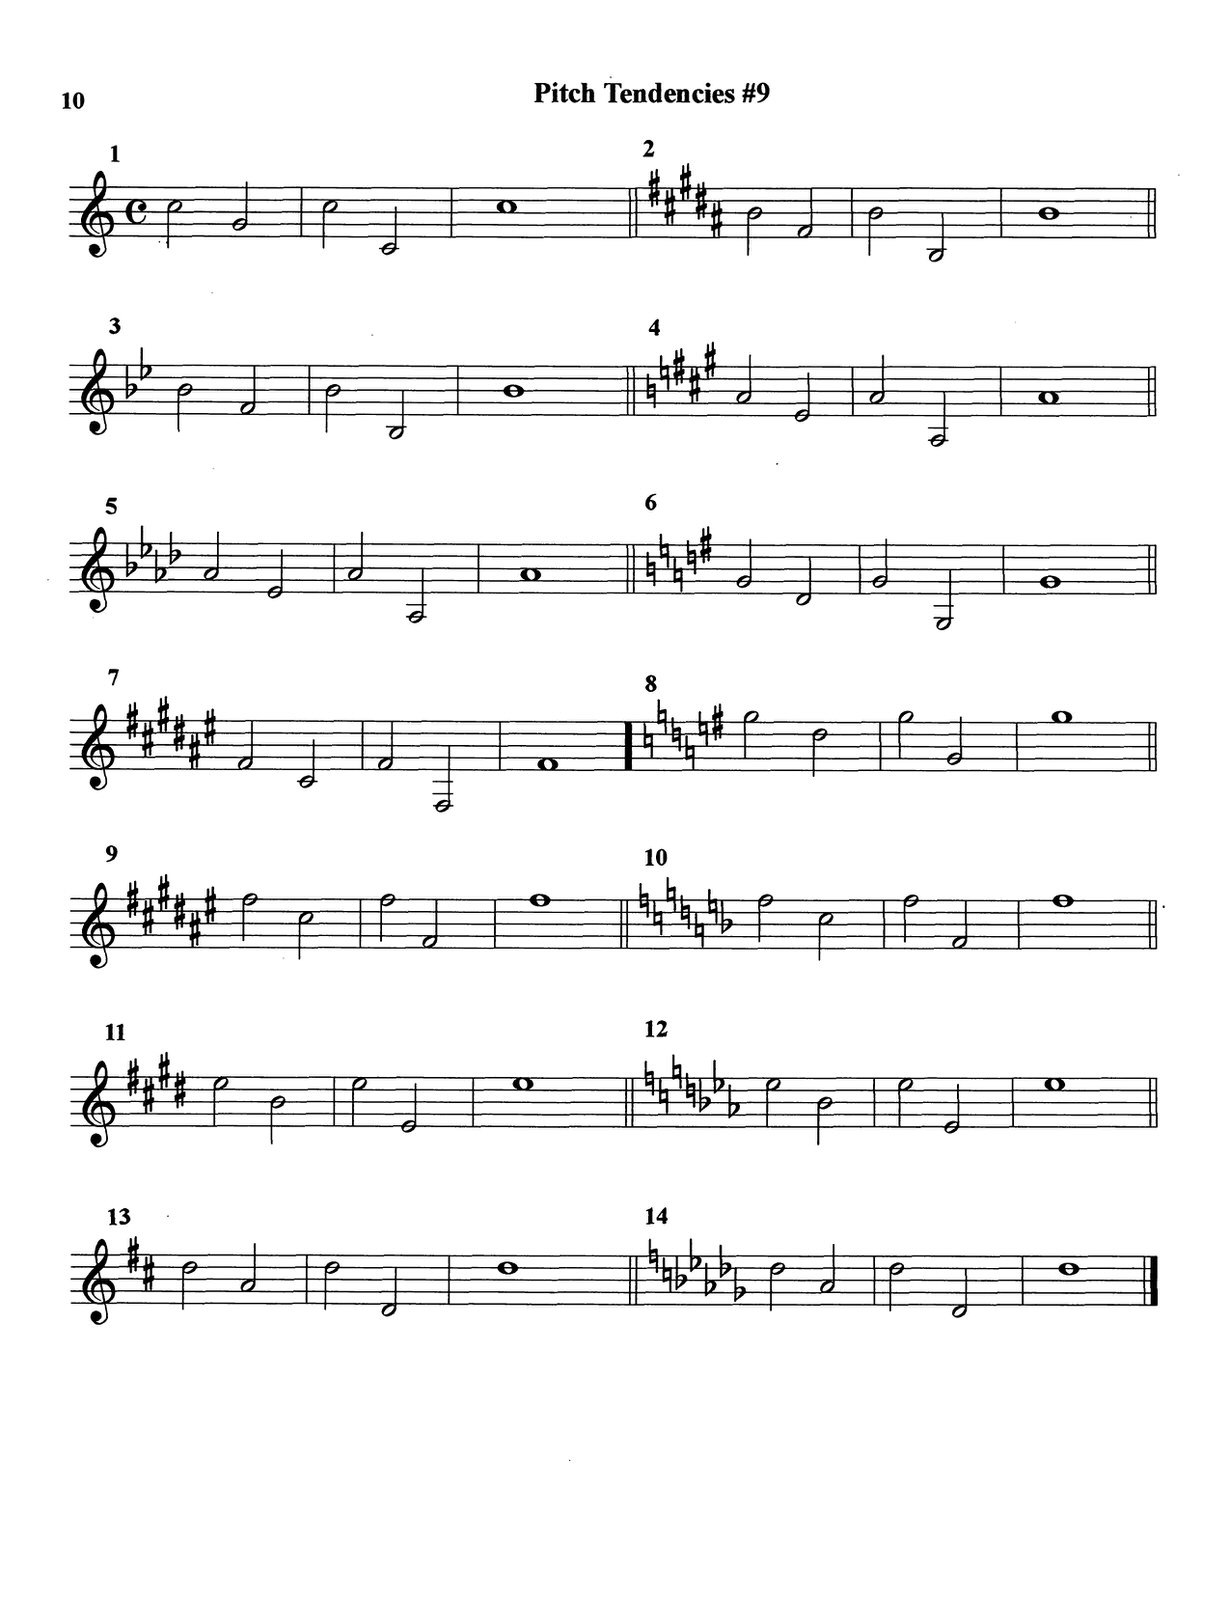 Ponzo, Pitch Tendency Exercises for Trumpet_000014